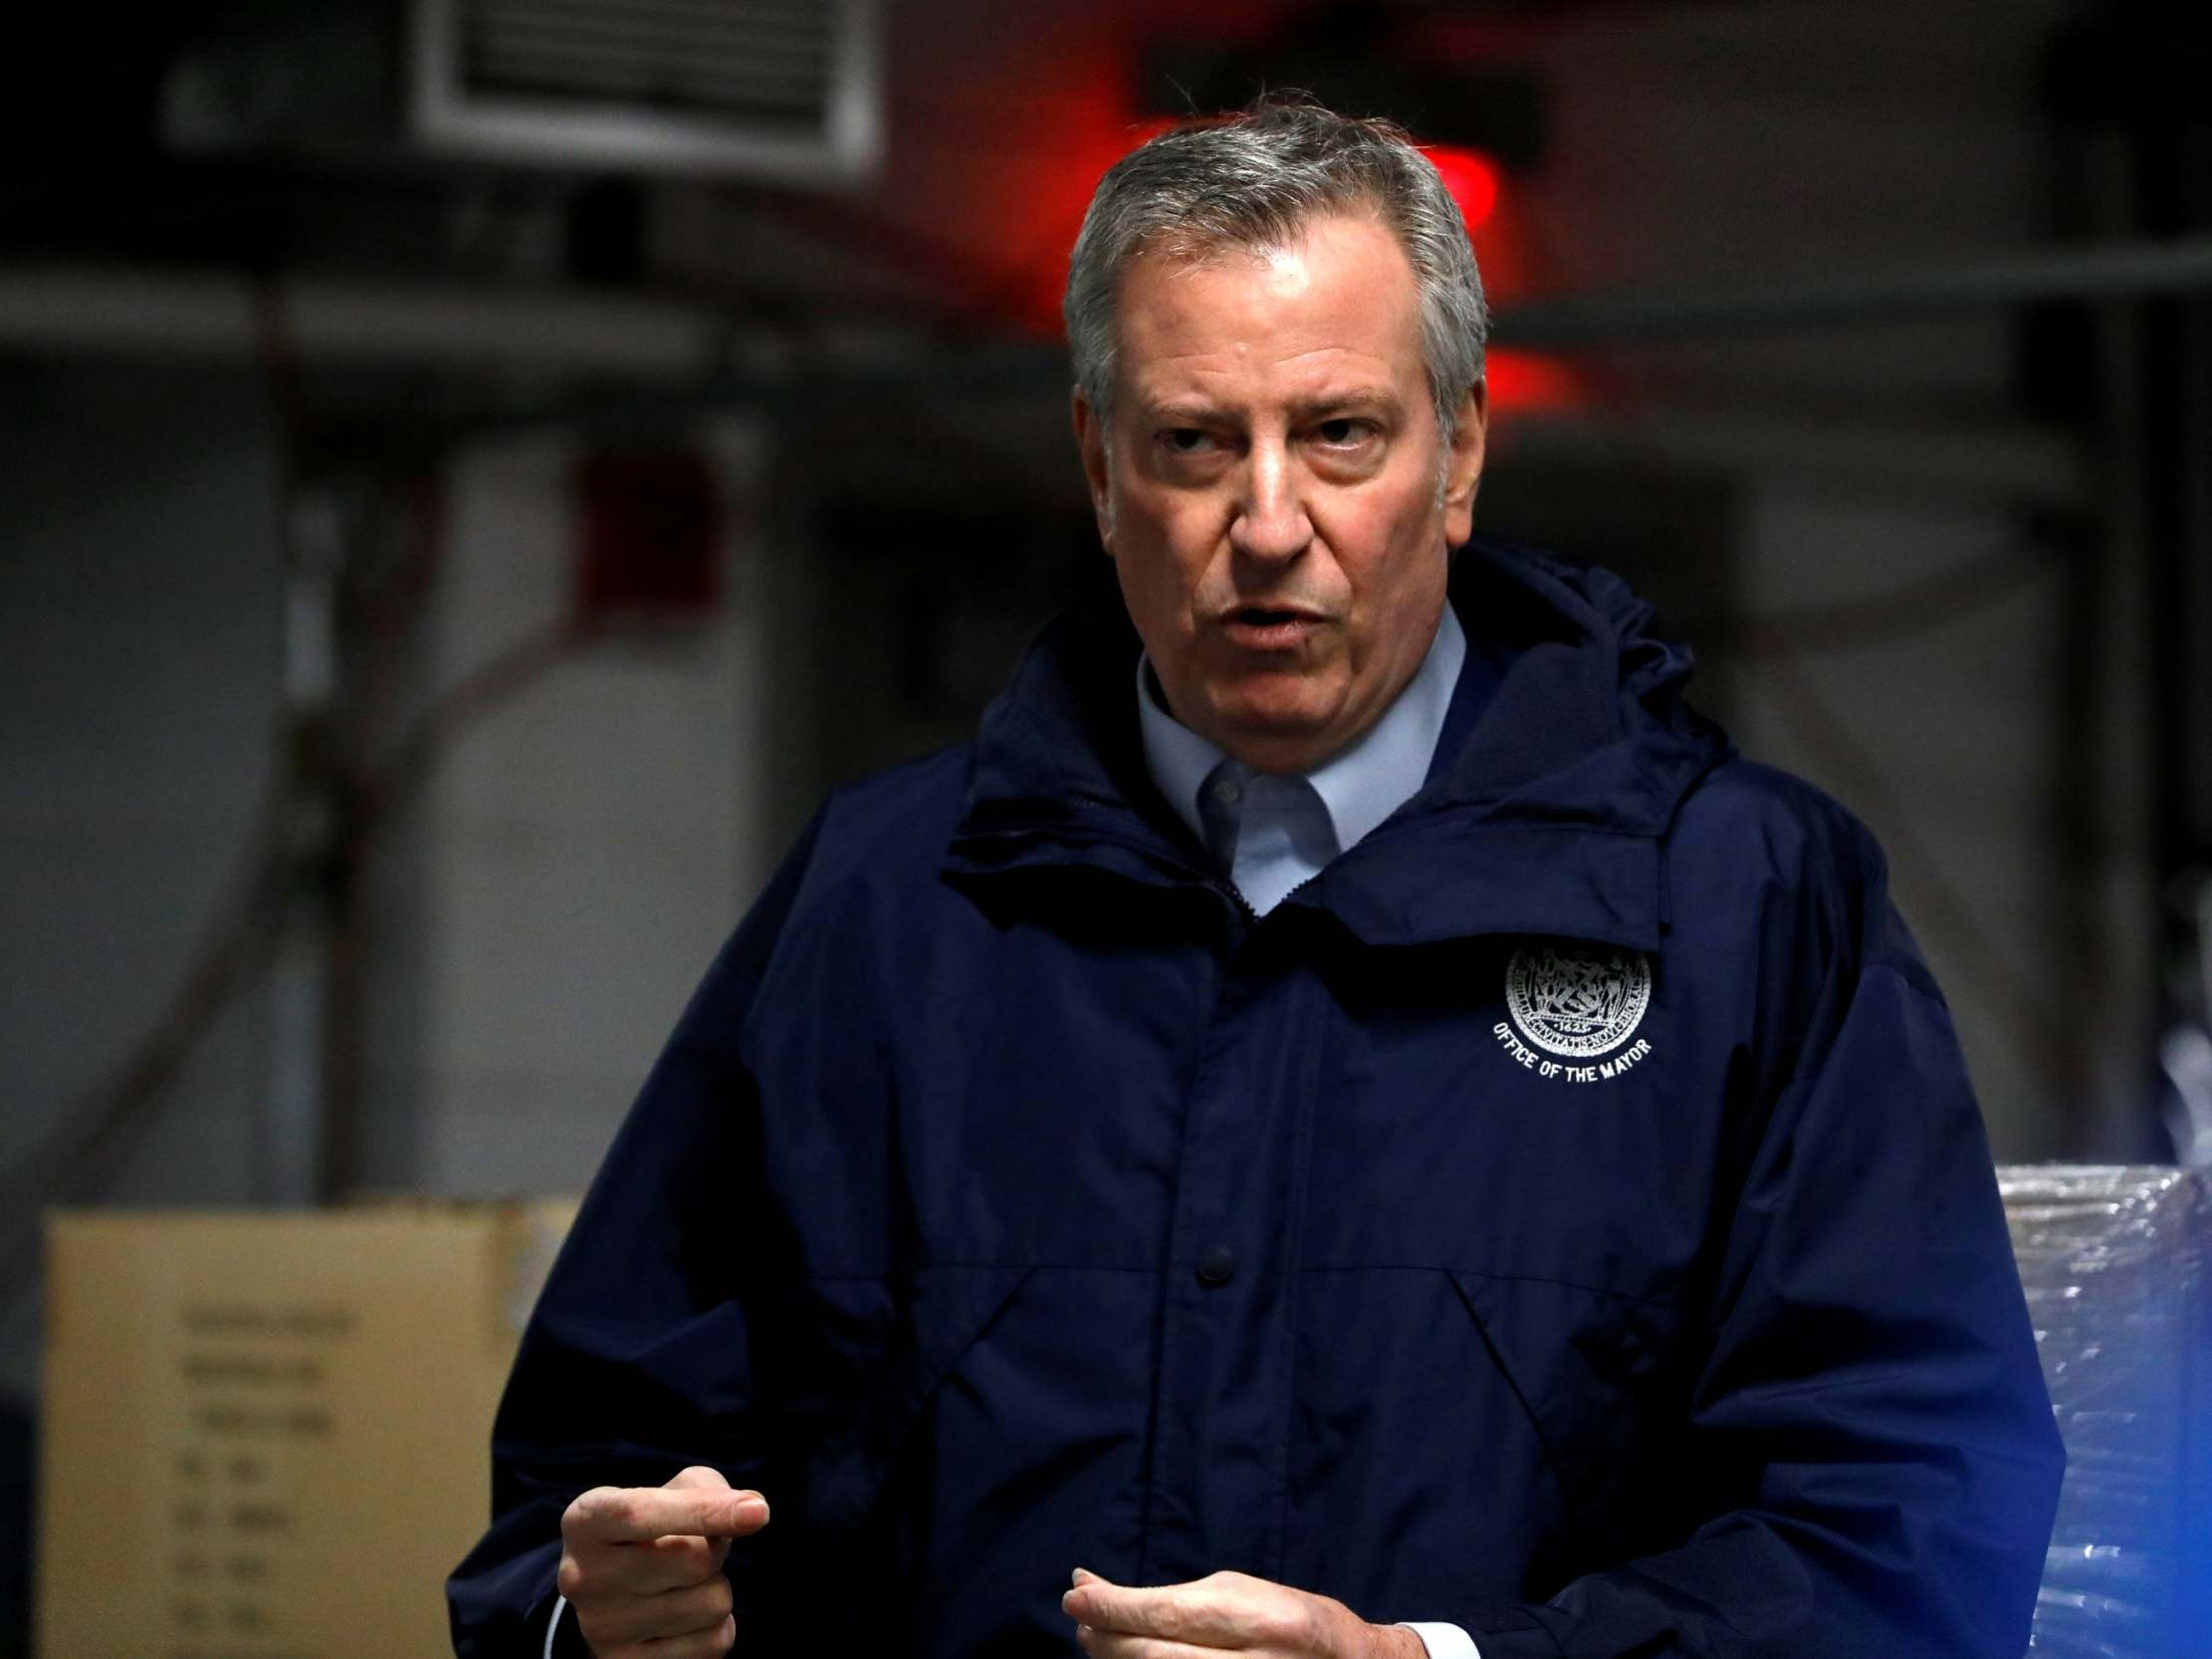 Bill de Blasio issues apology after critics said NYC mayor was 'inviting anti-Semitism' with threats to Jewish community photo